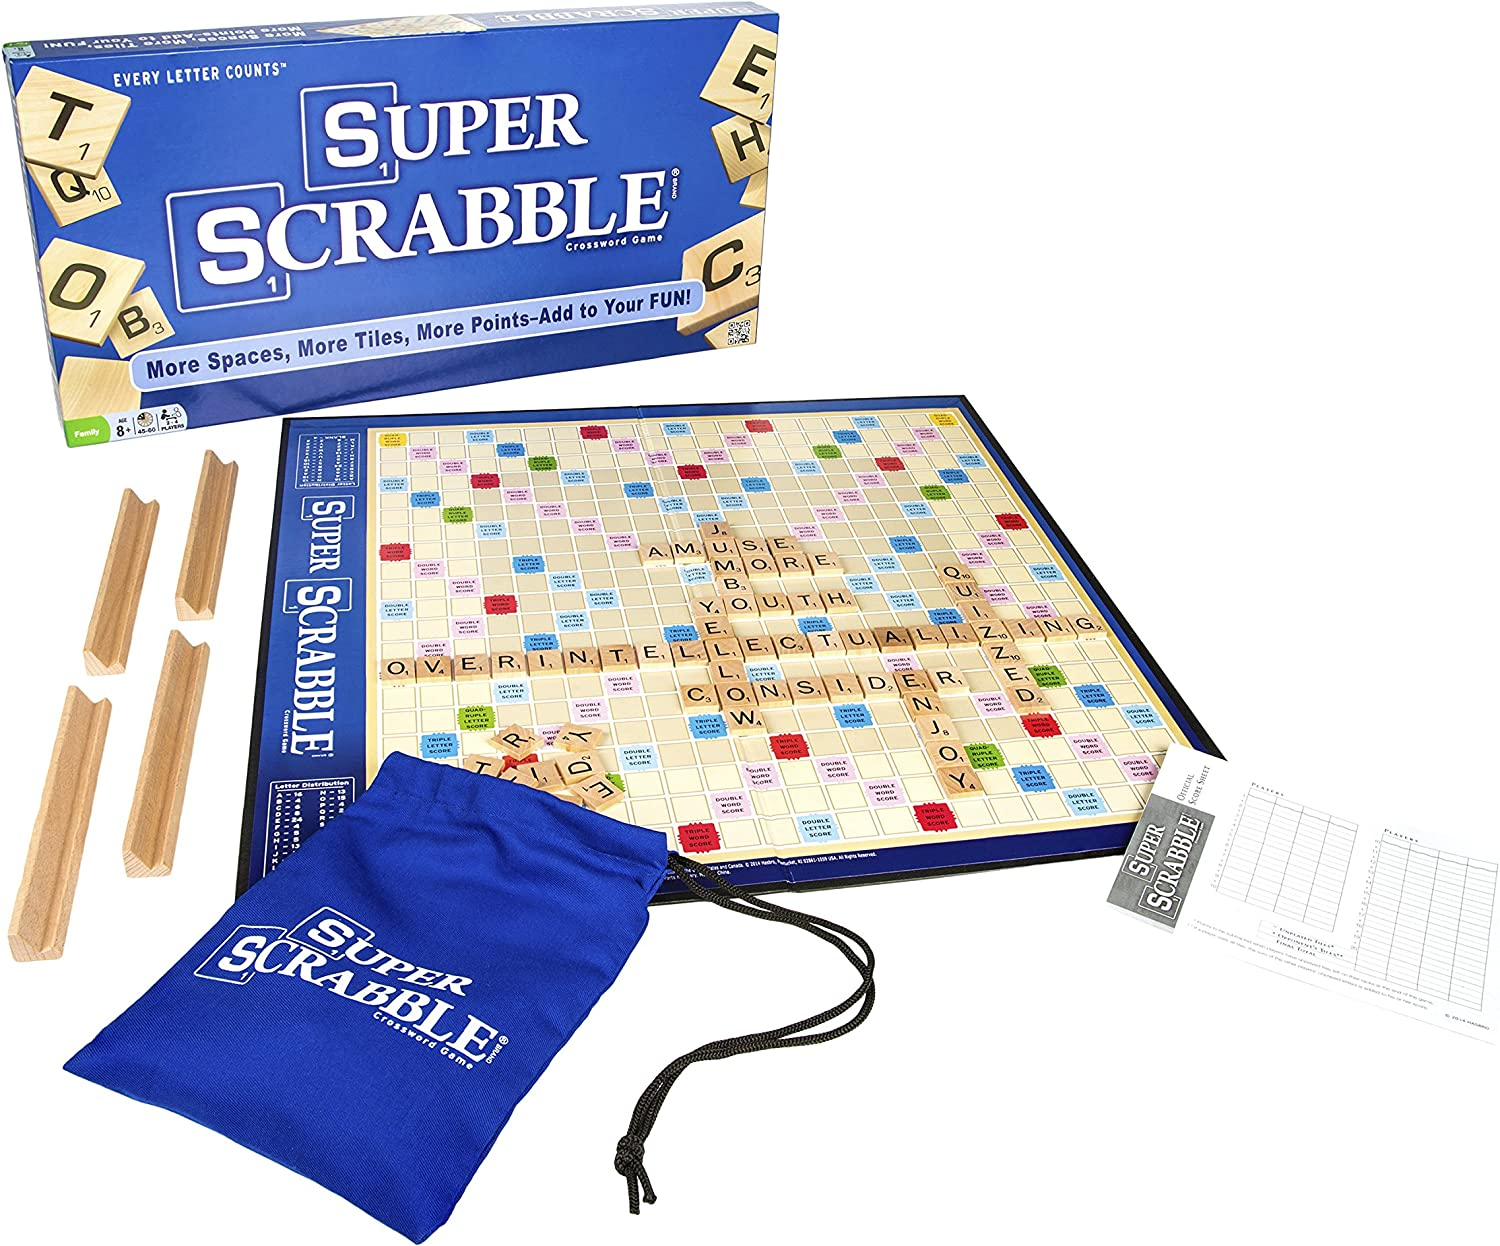 Super Scrabble - The Super-Sized Version of the Greatest Word Game of All Time - 2 to 4 Players - Ages 8 and Up by Winning Moves: Amazon.es: Juguetes y juegos